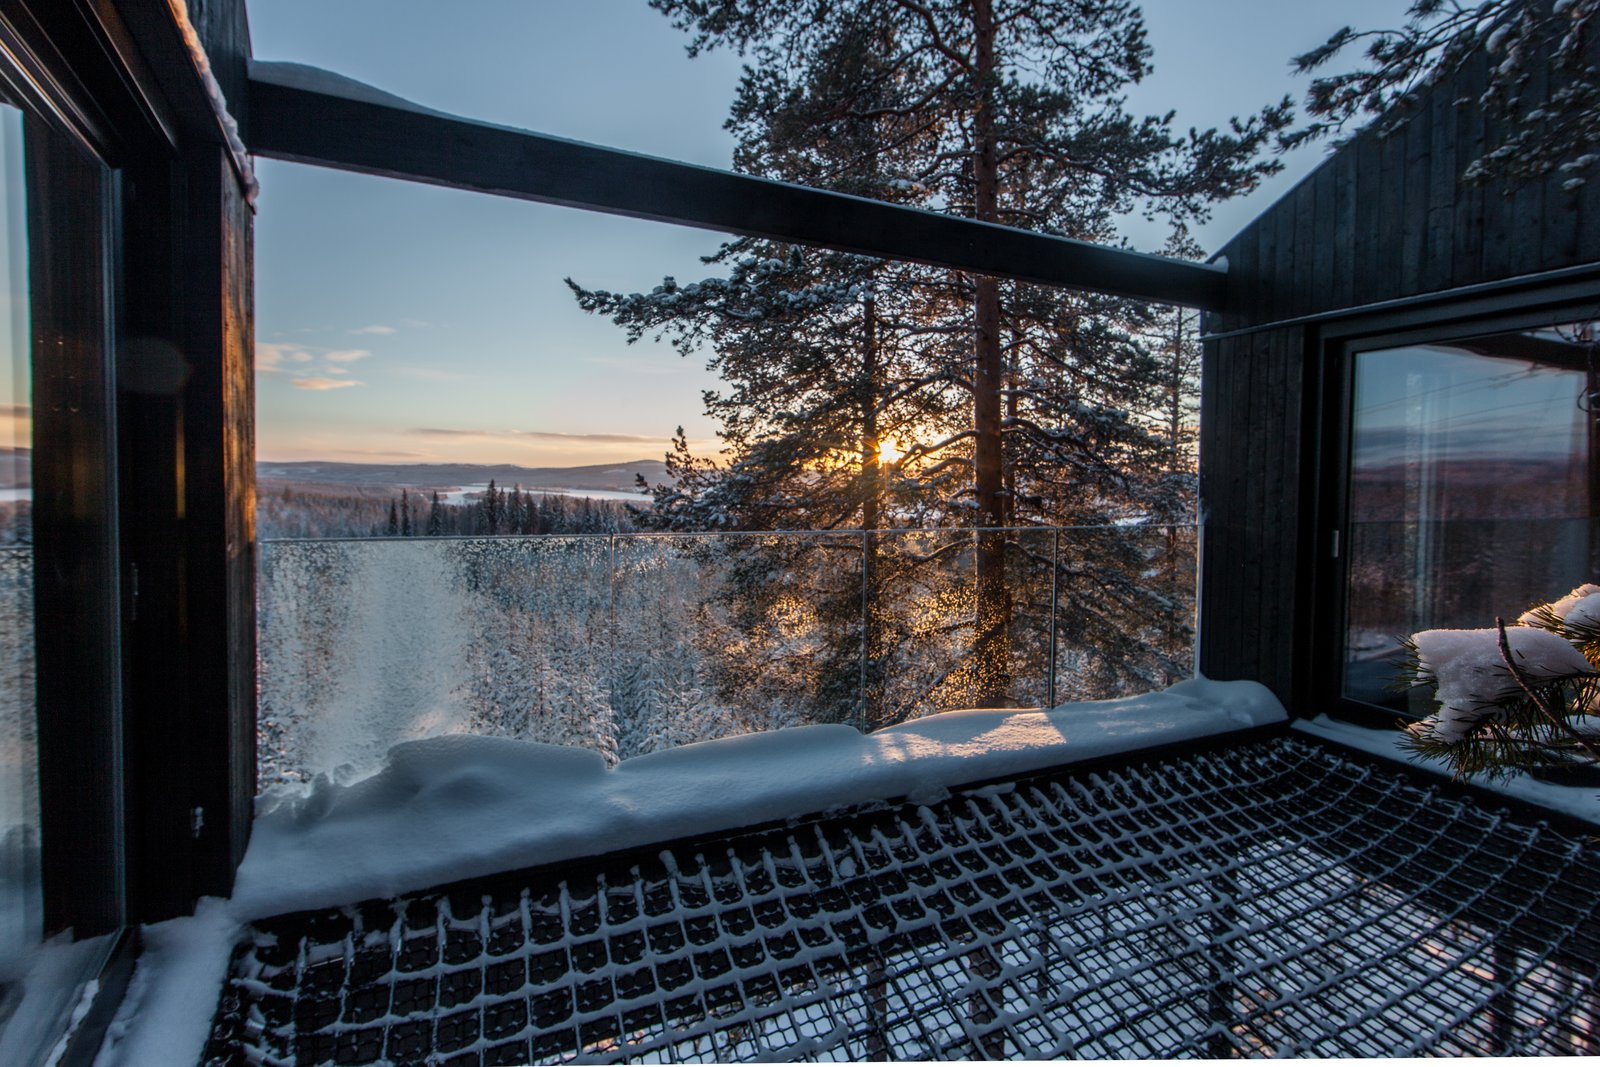 A double-layered net stretches between two bedrooms, providing an open terrace and a place to sleep under the night sky. Go Stargazing in Snøhetta's Towering Addition to Sweden's Treehotel - Photo 5 of 8